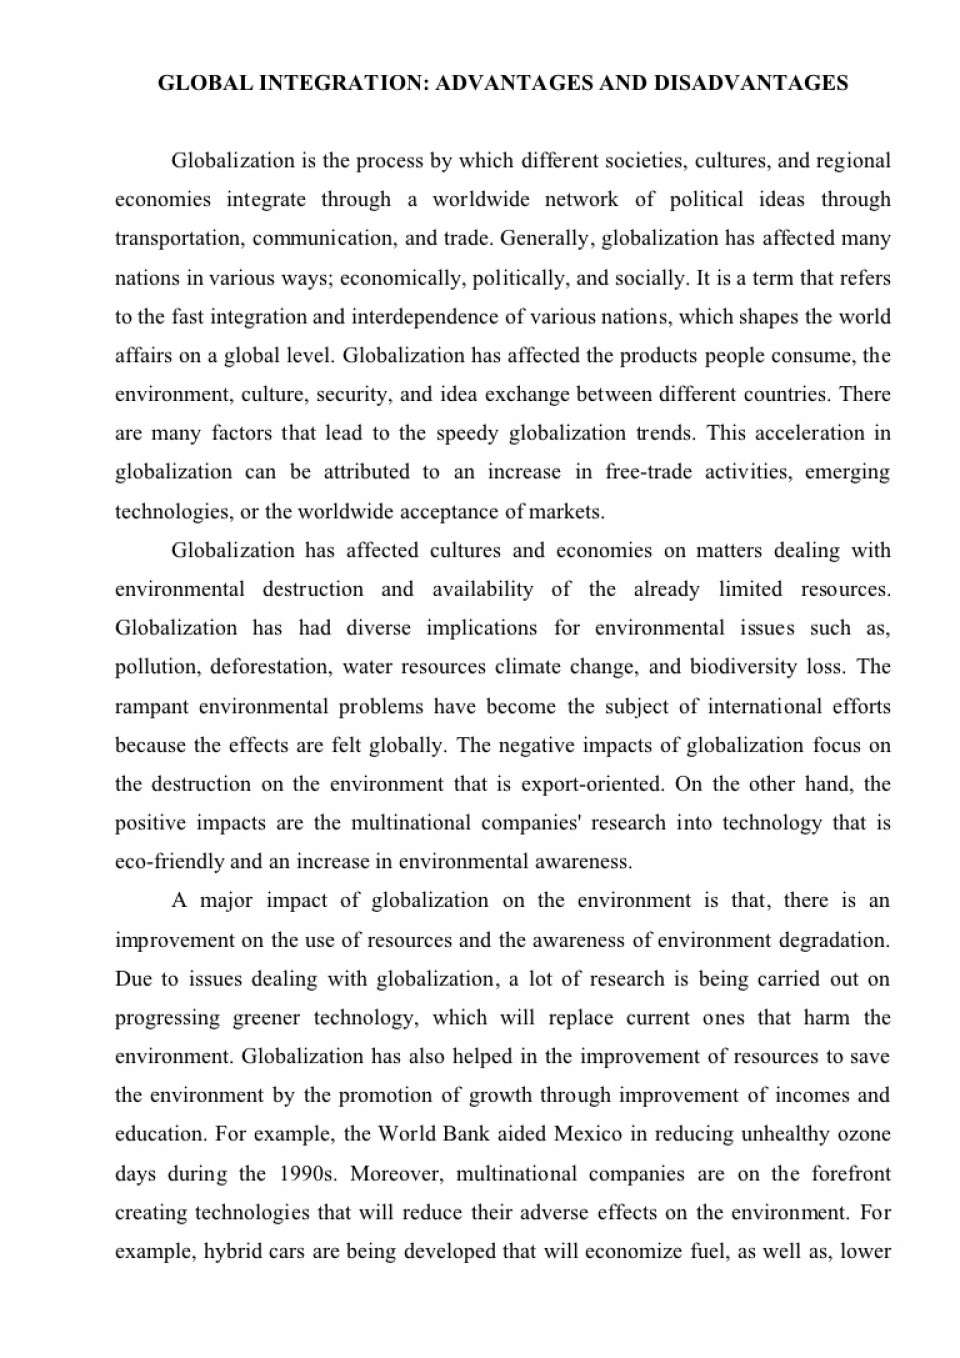 021 Essayglobalization Phpapp02 Thumbnail Essay Example Advantage And Disadvantage Of Shocking Science Advantages Disadvantages In Marathi Language Urdu Tamil Pdf 960